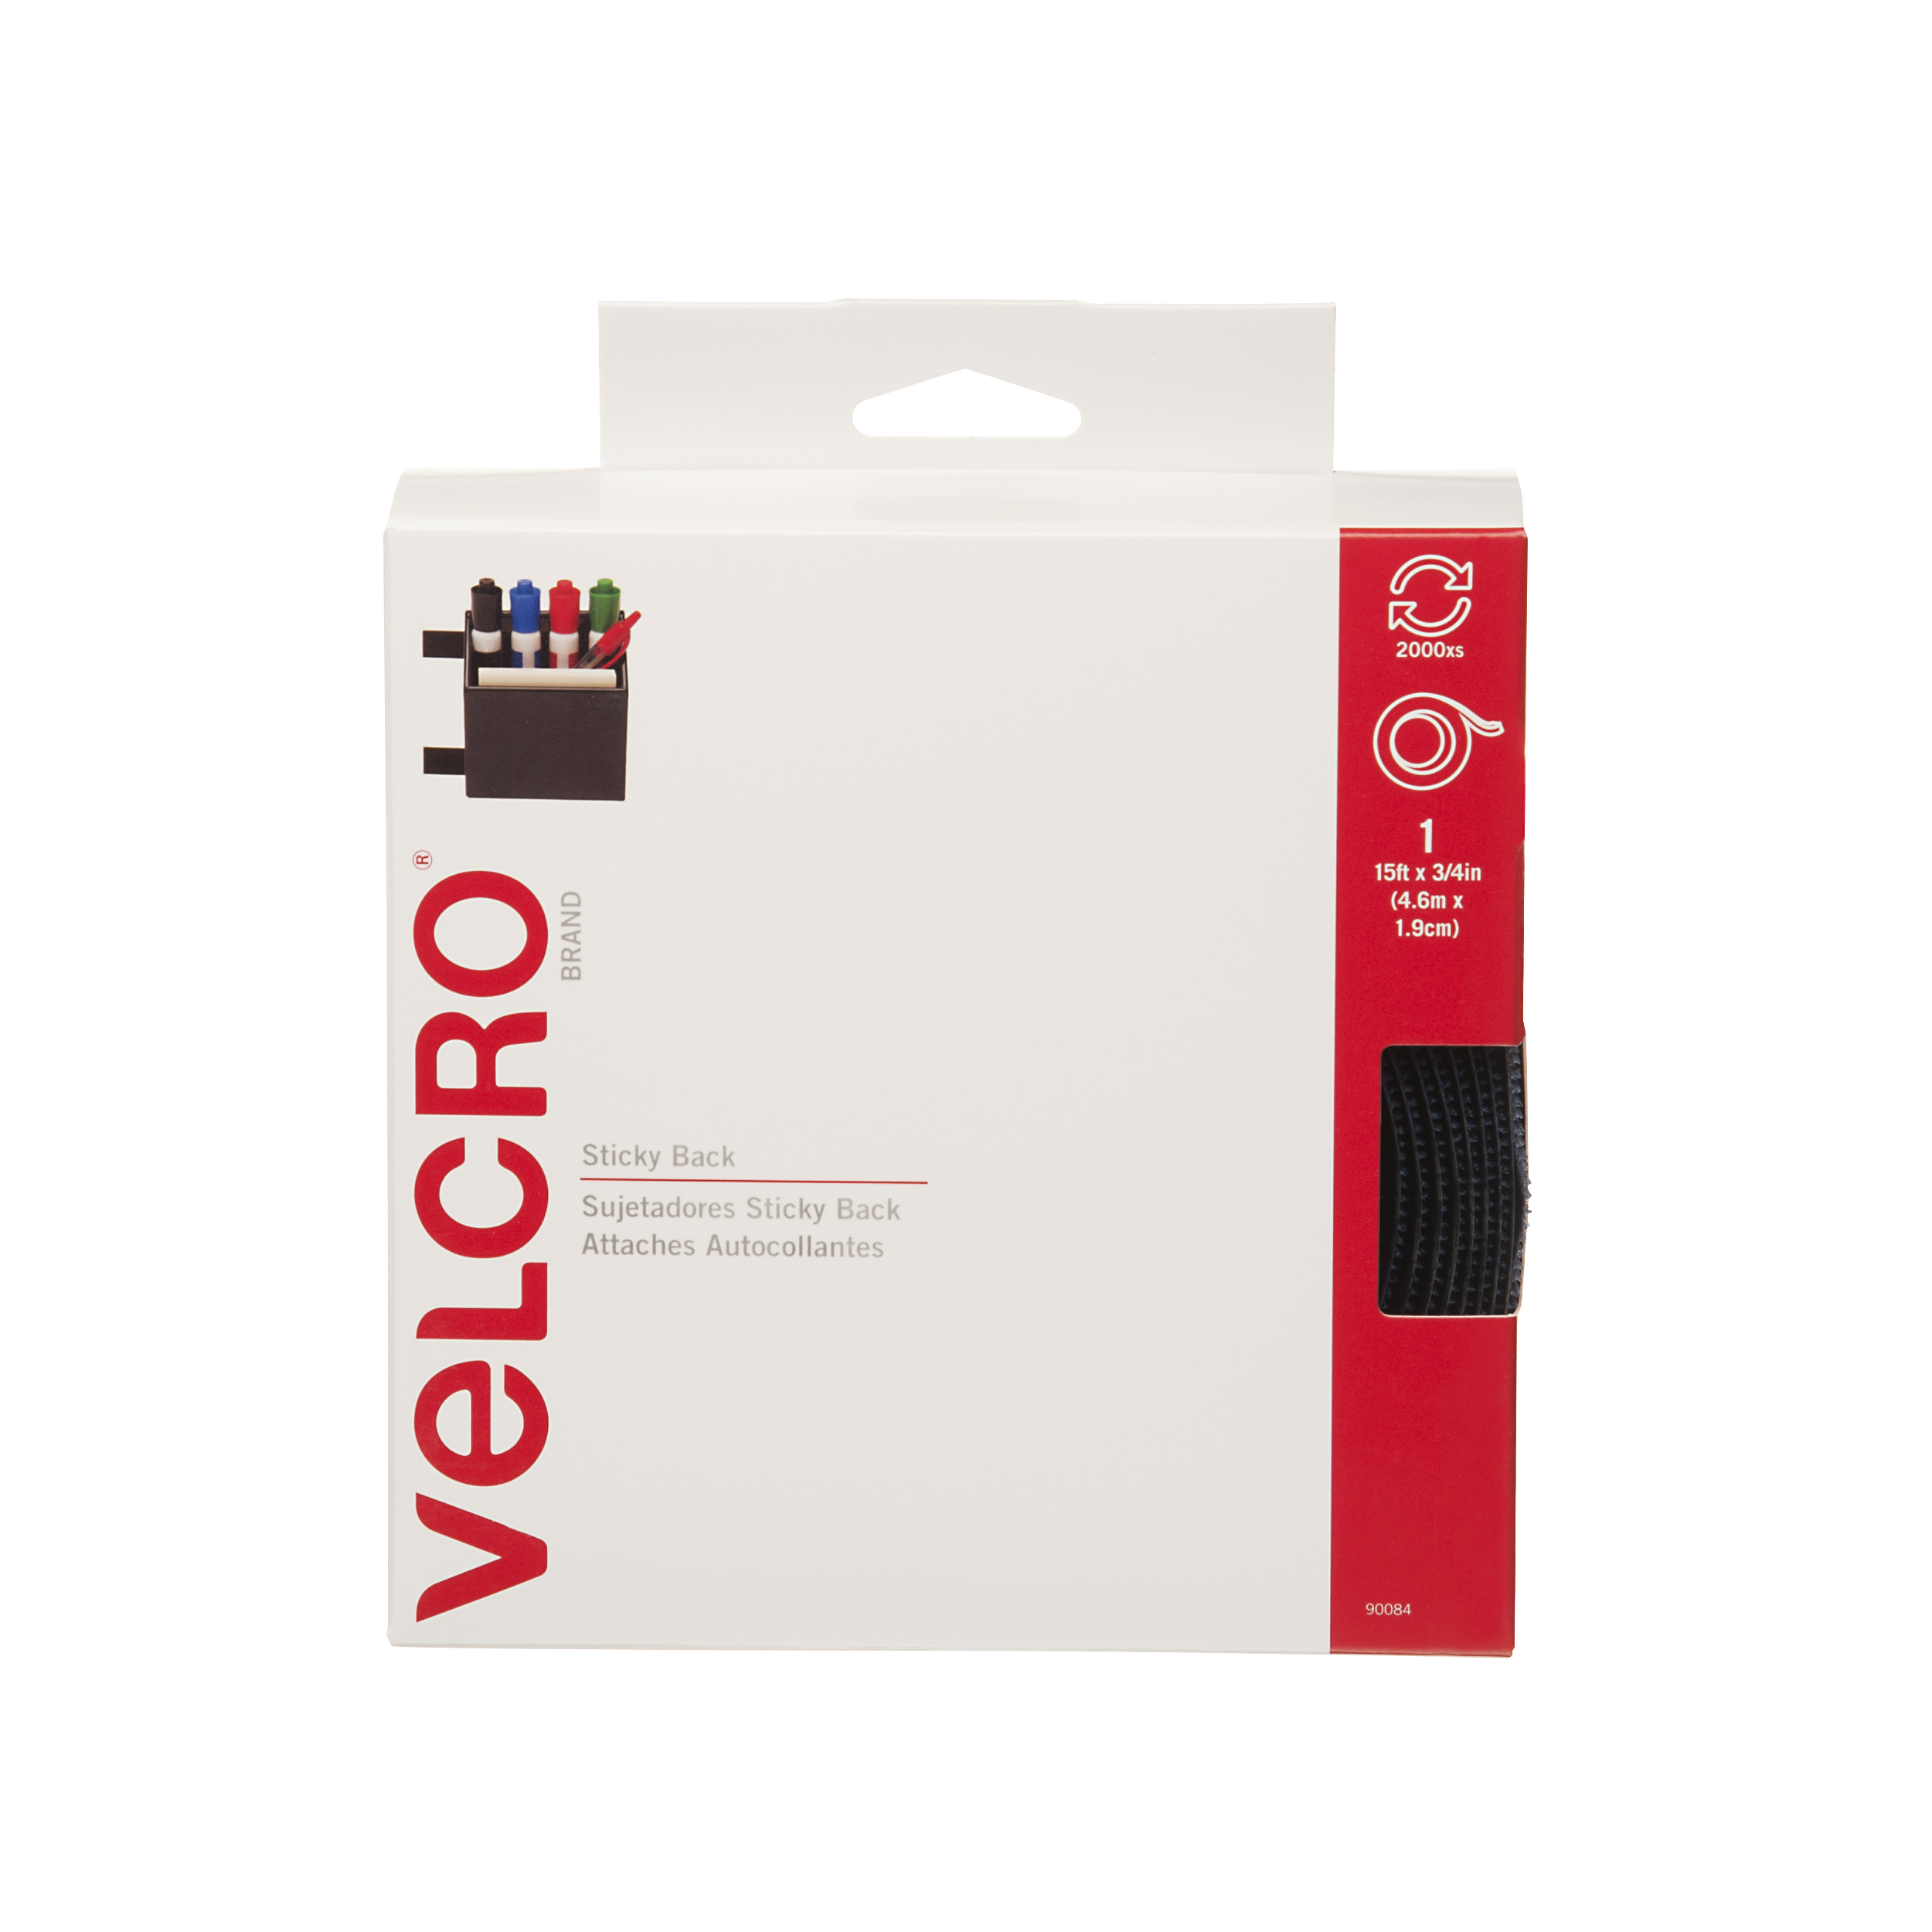 VELCRO Brand Sticky Back Tape, Navy